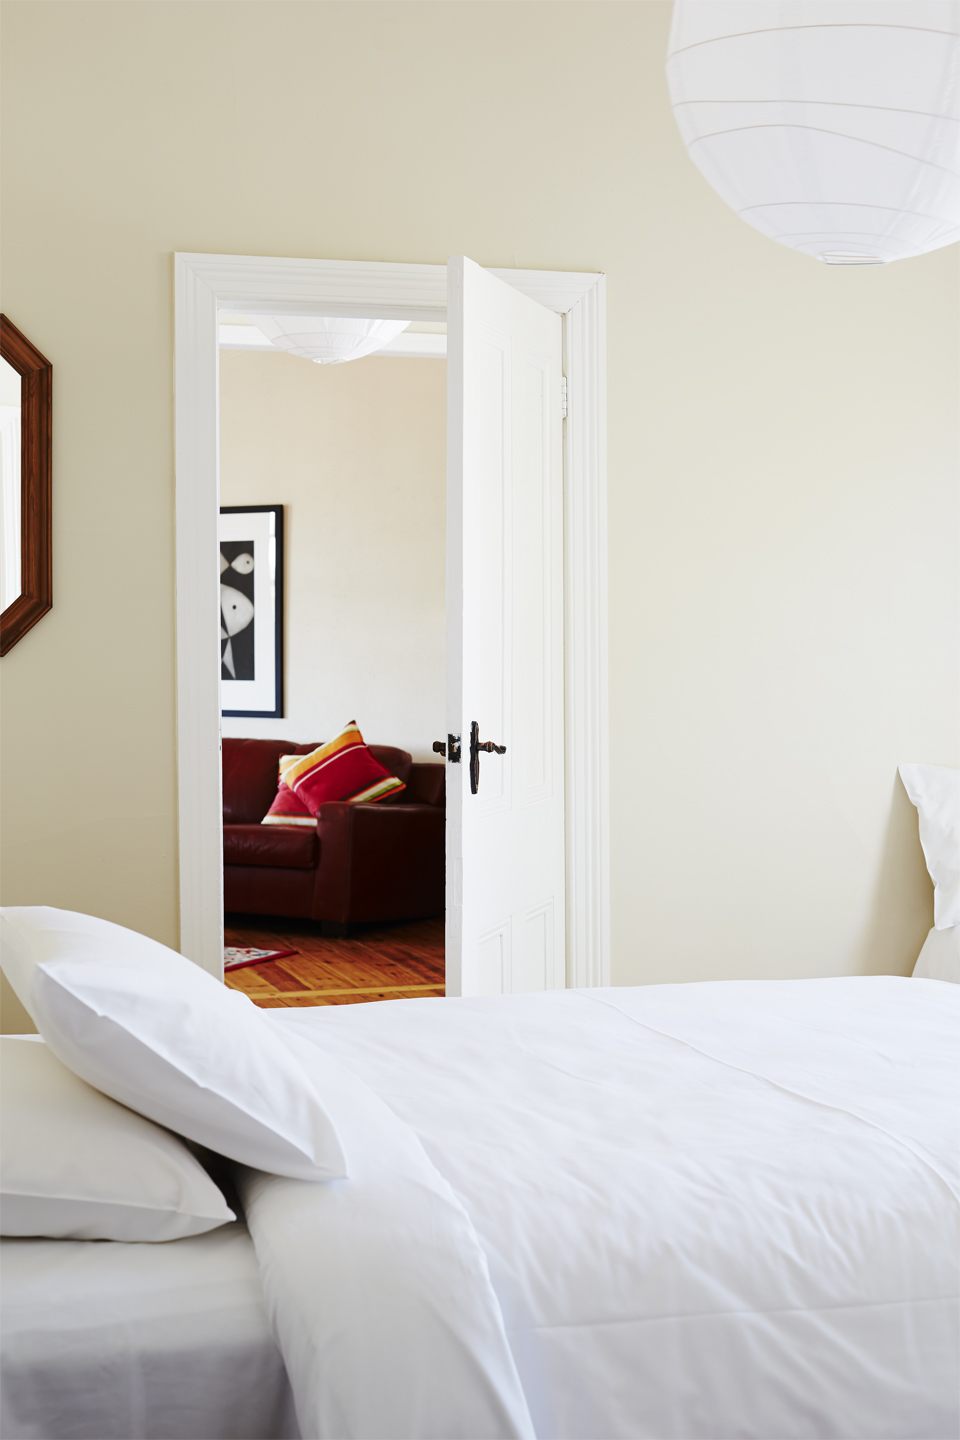 DaylesfordHotel-Apartment-Bedroom-1.jpg